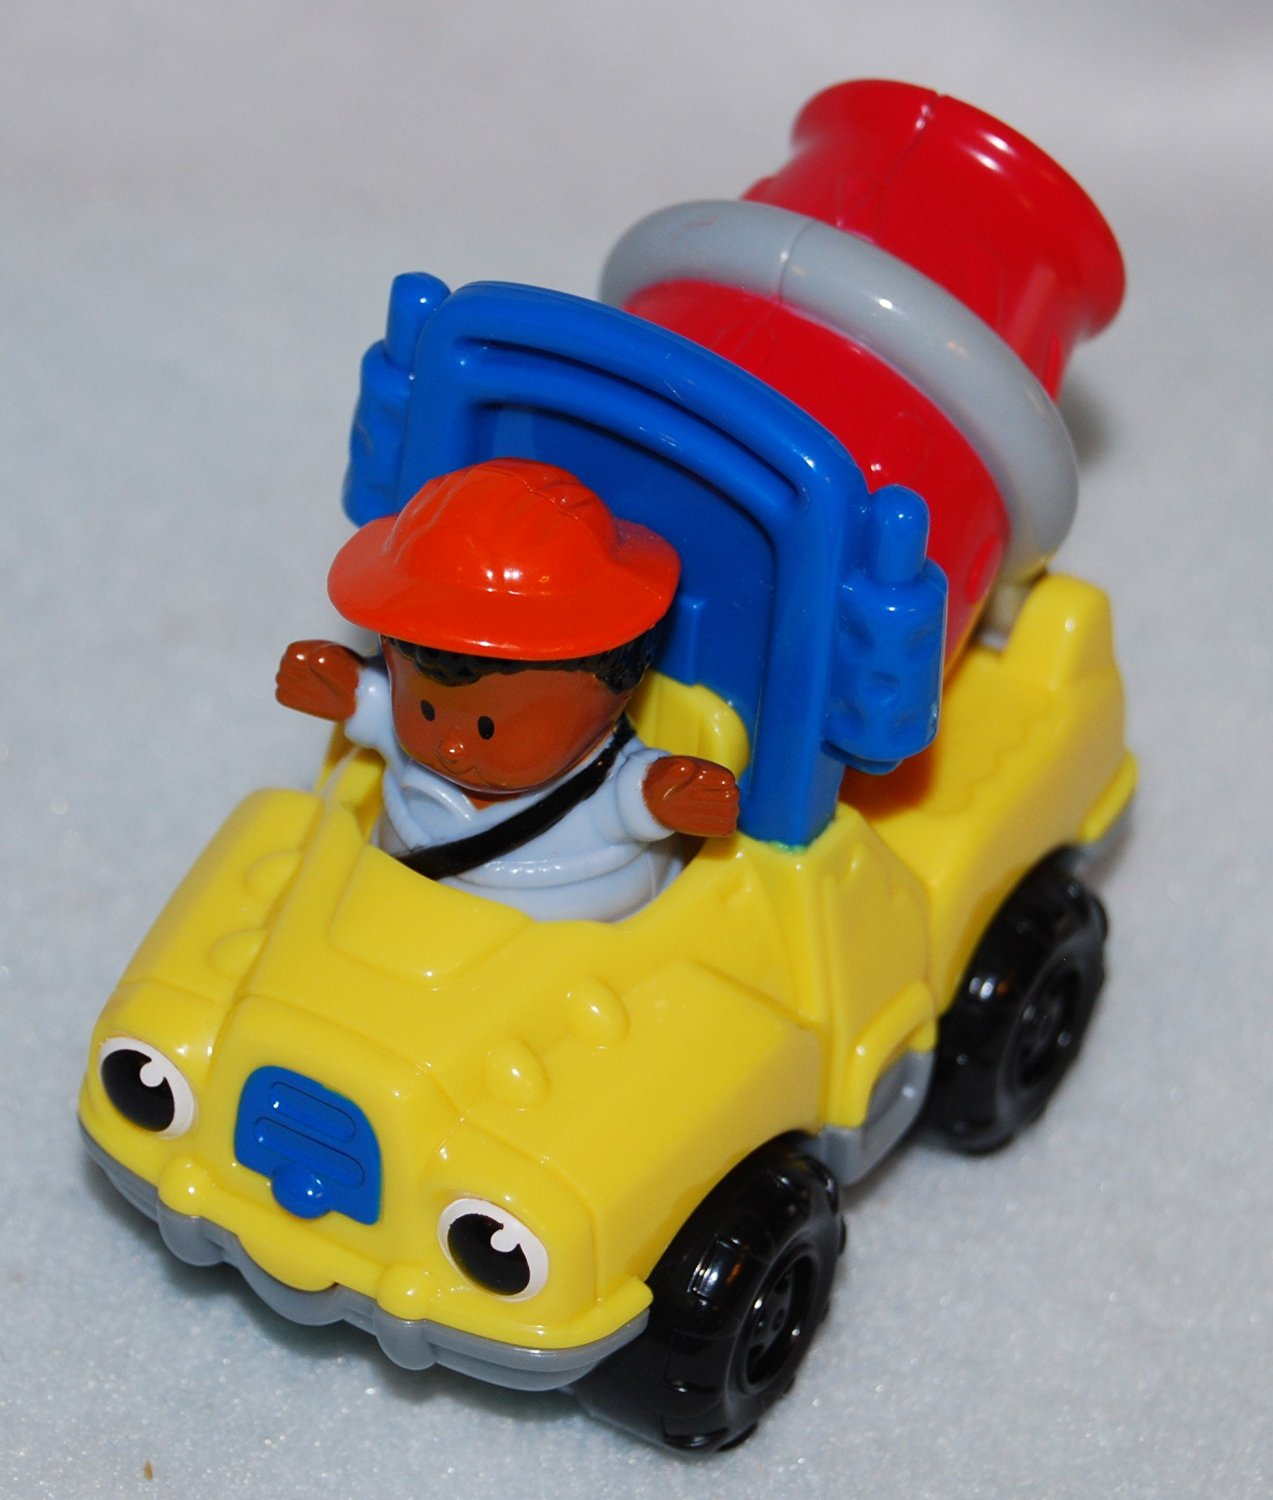 McDonalds Happy Meal 2004 Fisher Price Cement Truck with Africian American Little Boy